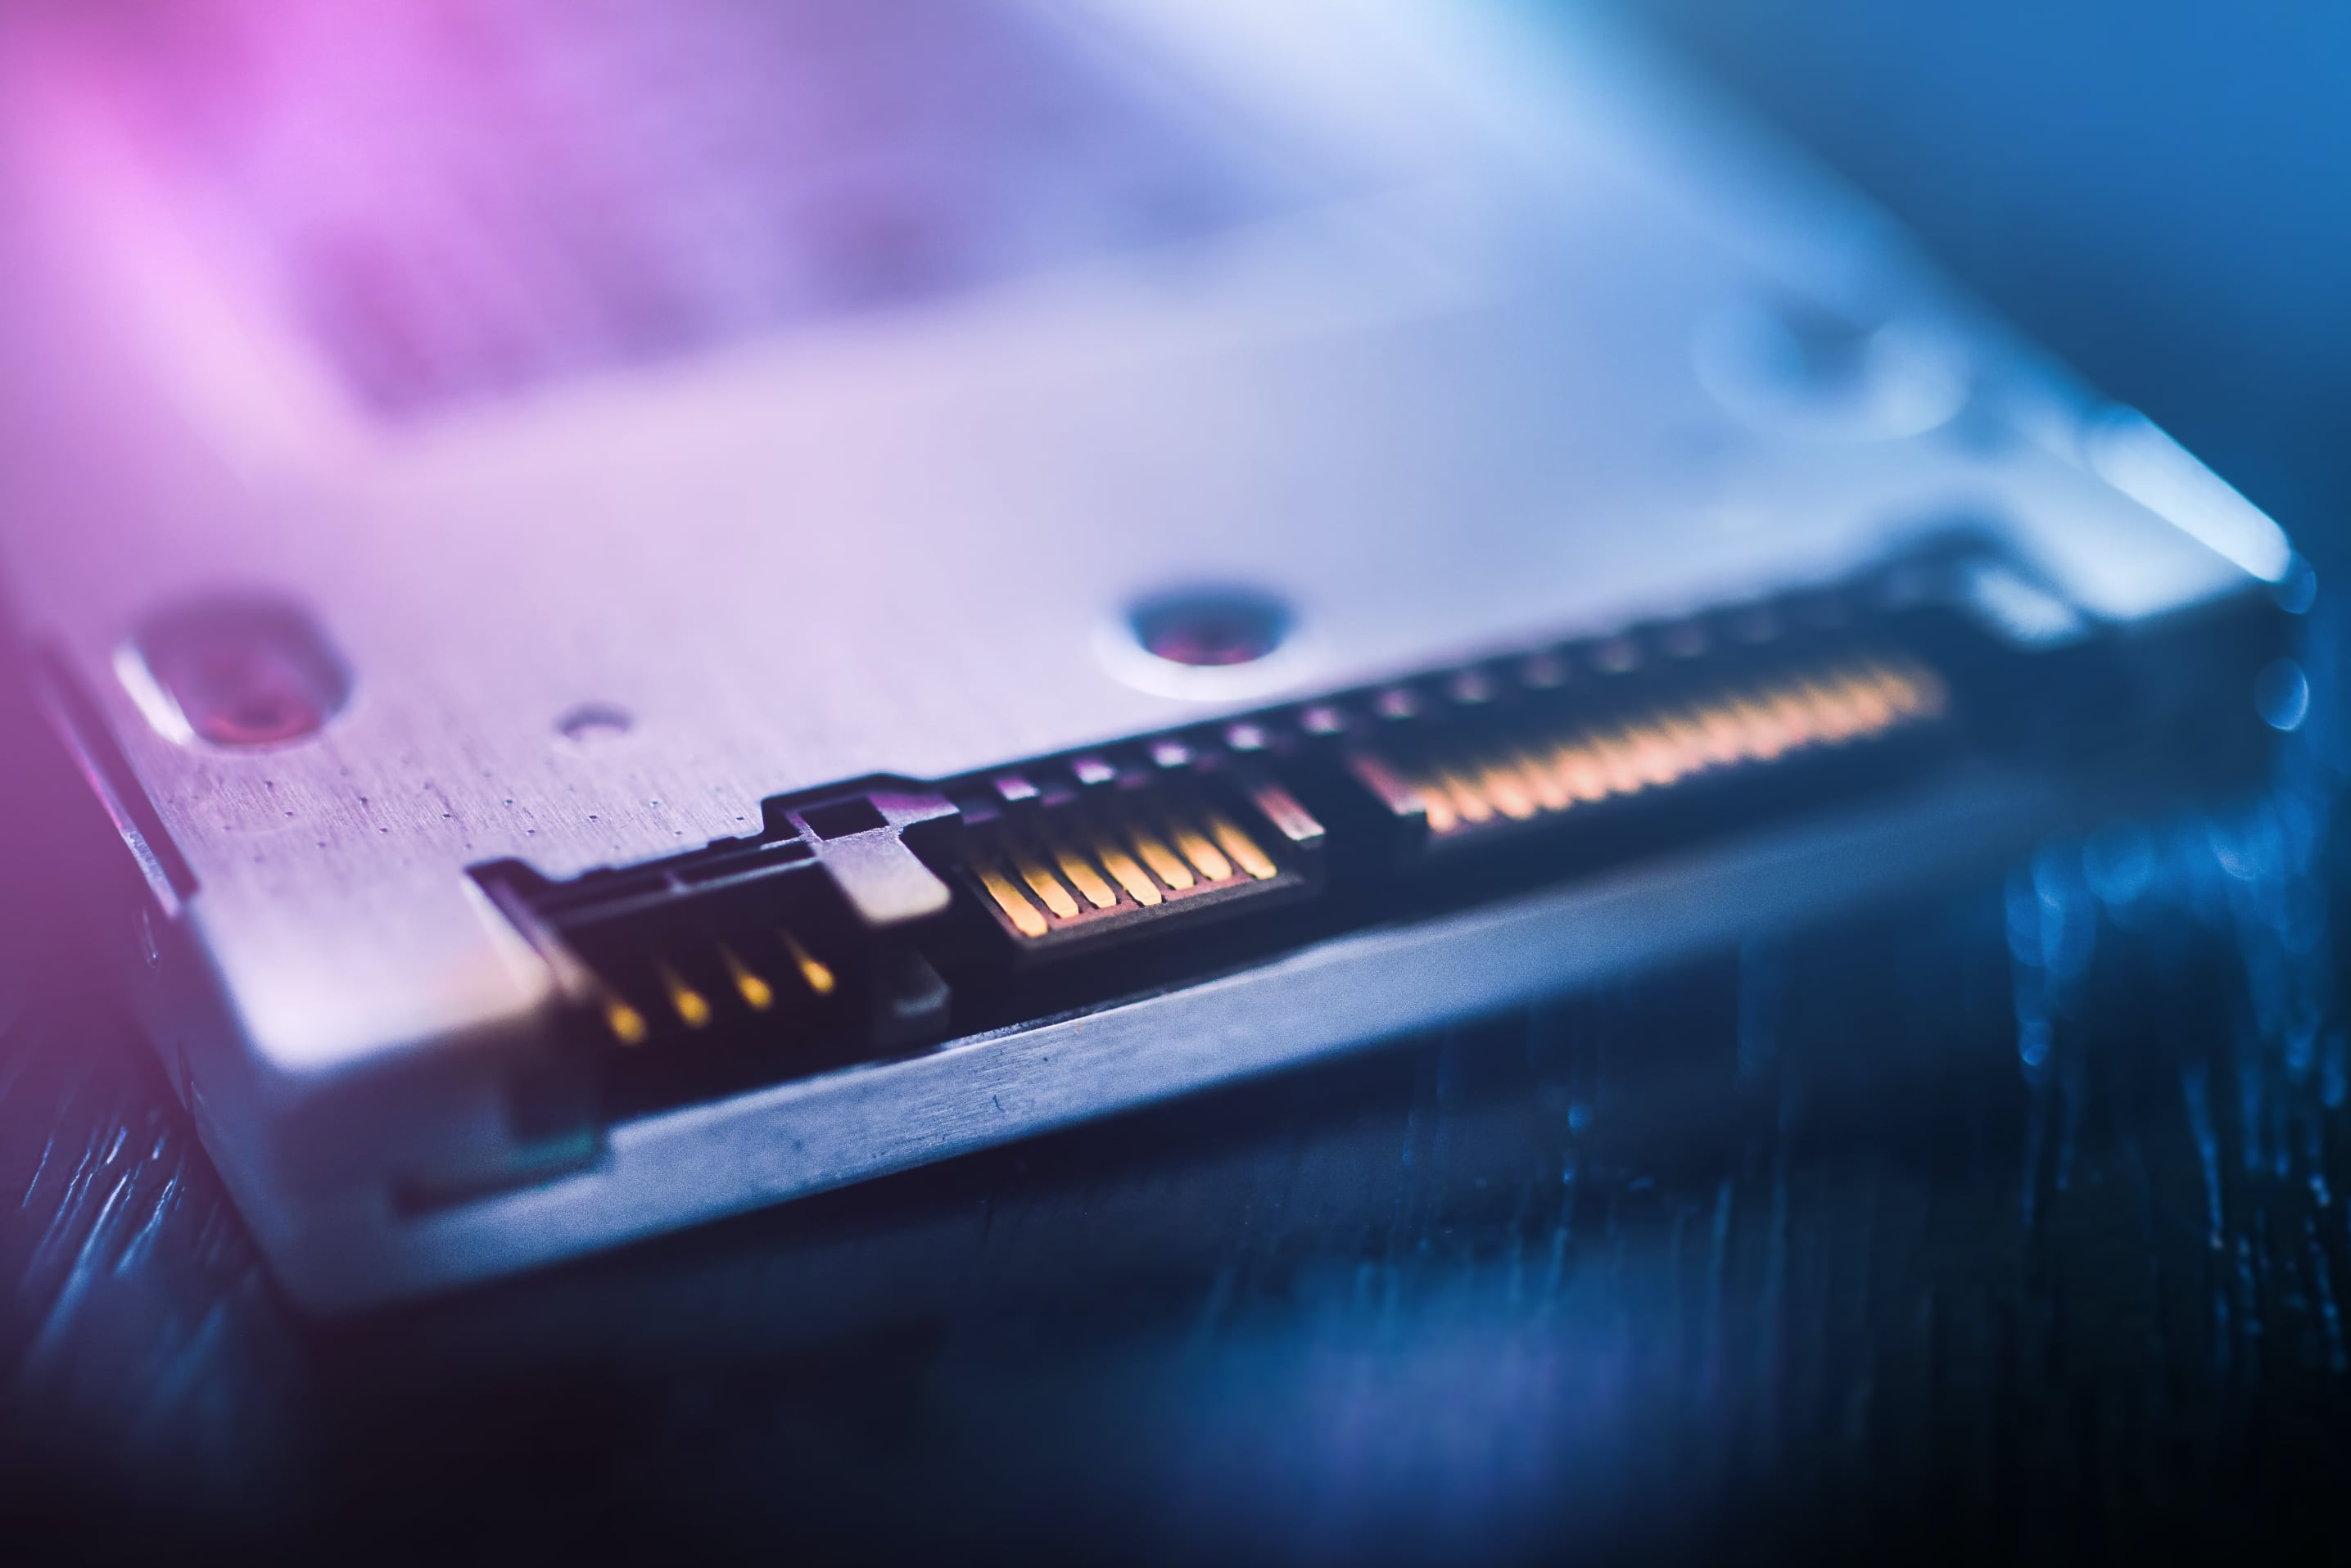 Anatomy of a Storage Drive: Solid State Drives